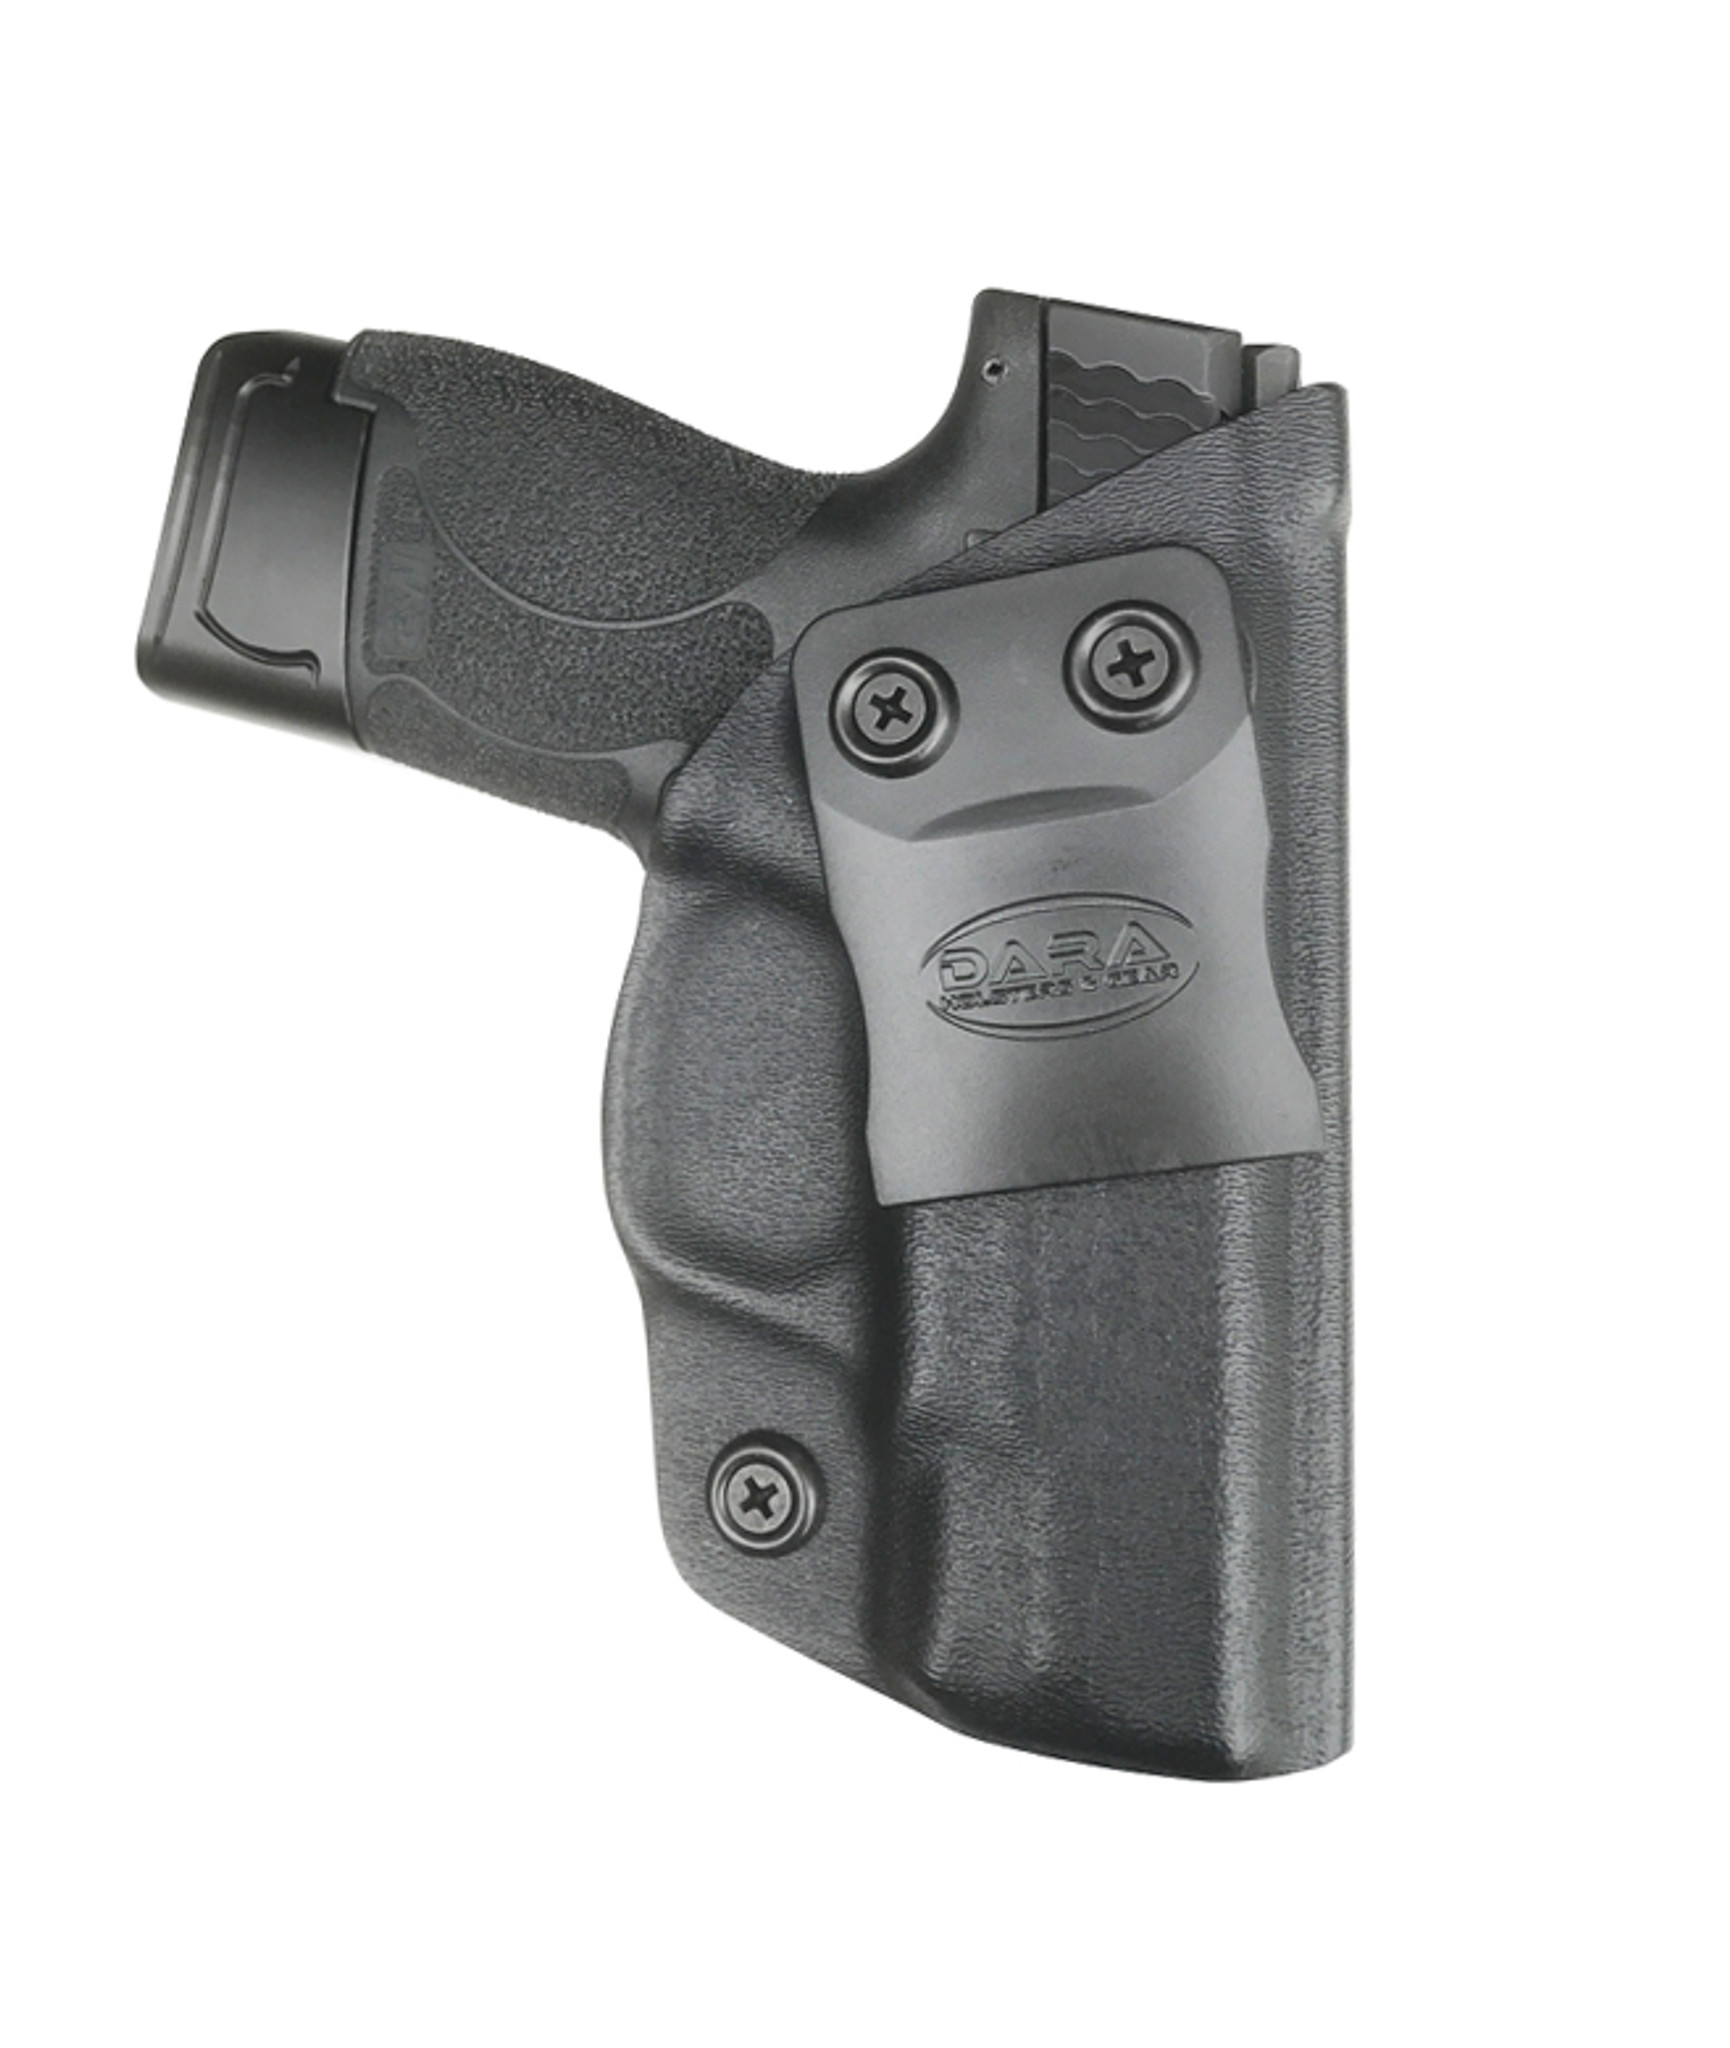 DARA QUICK SHIP HOLSTER